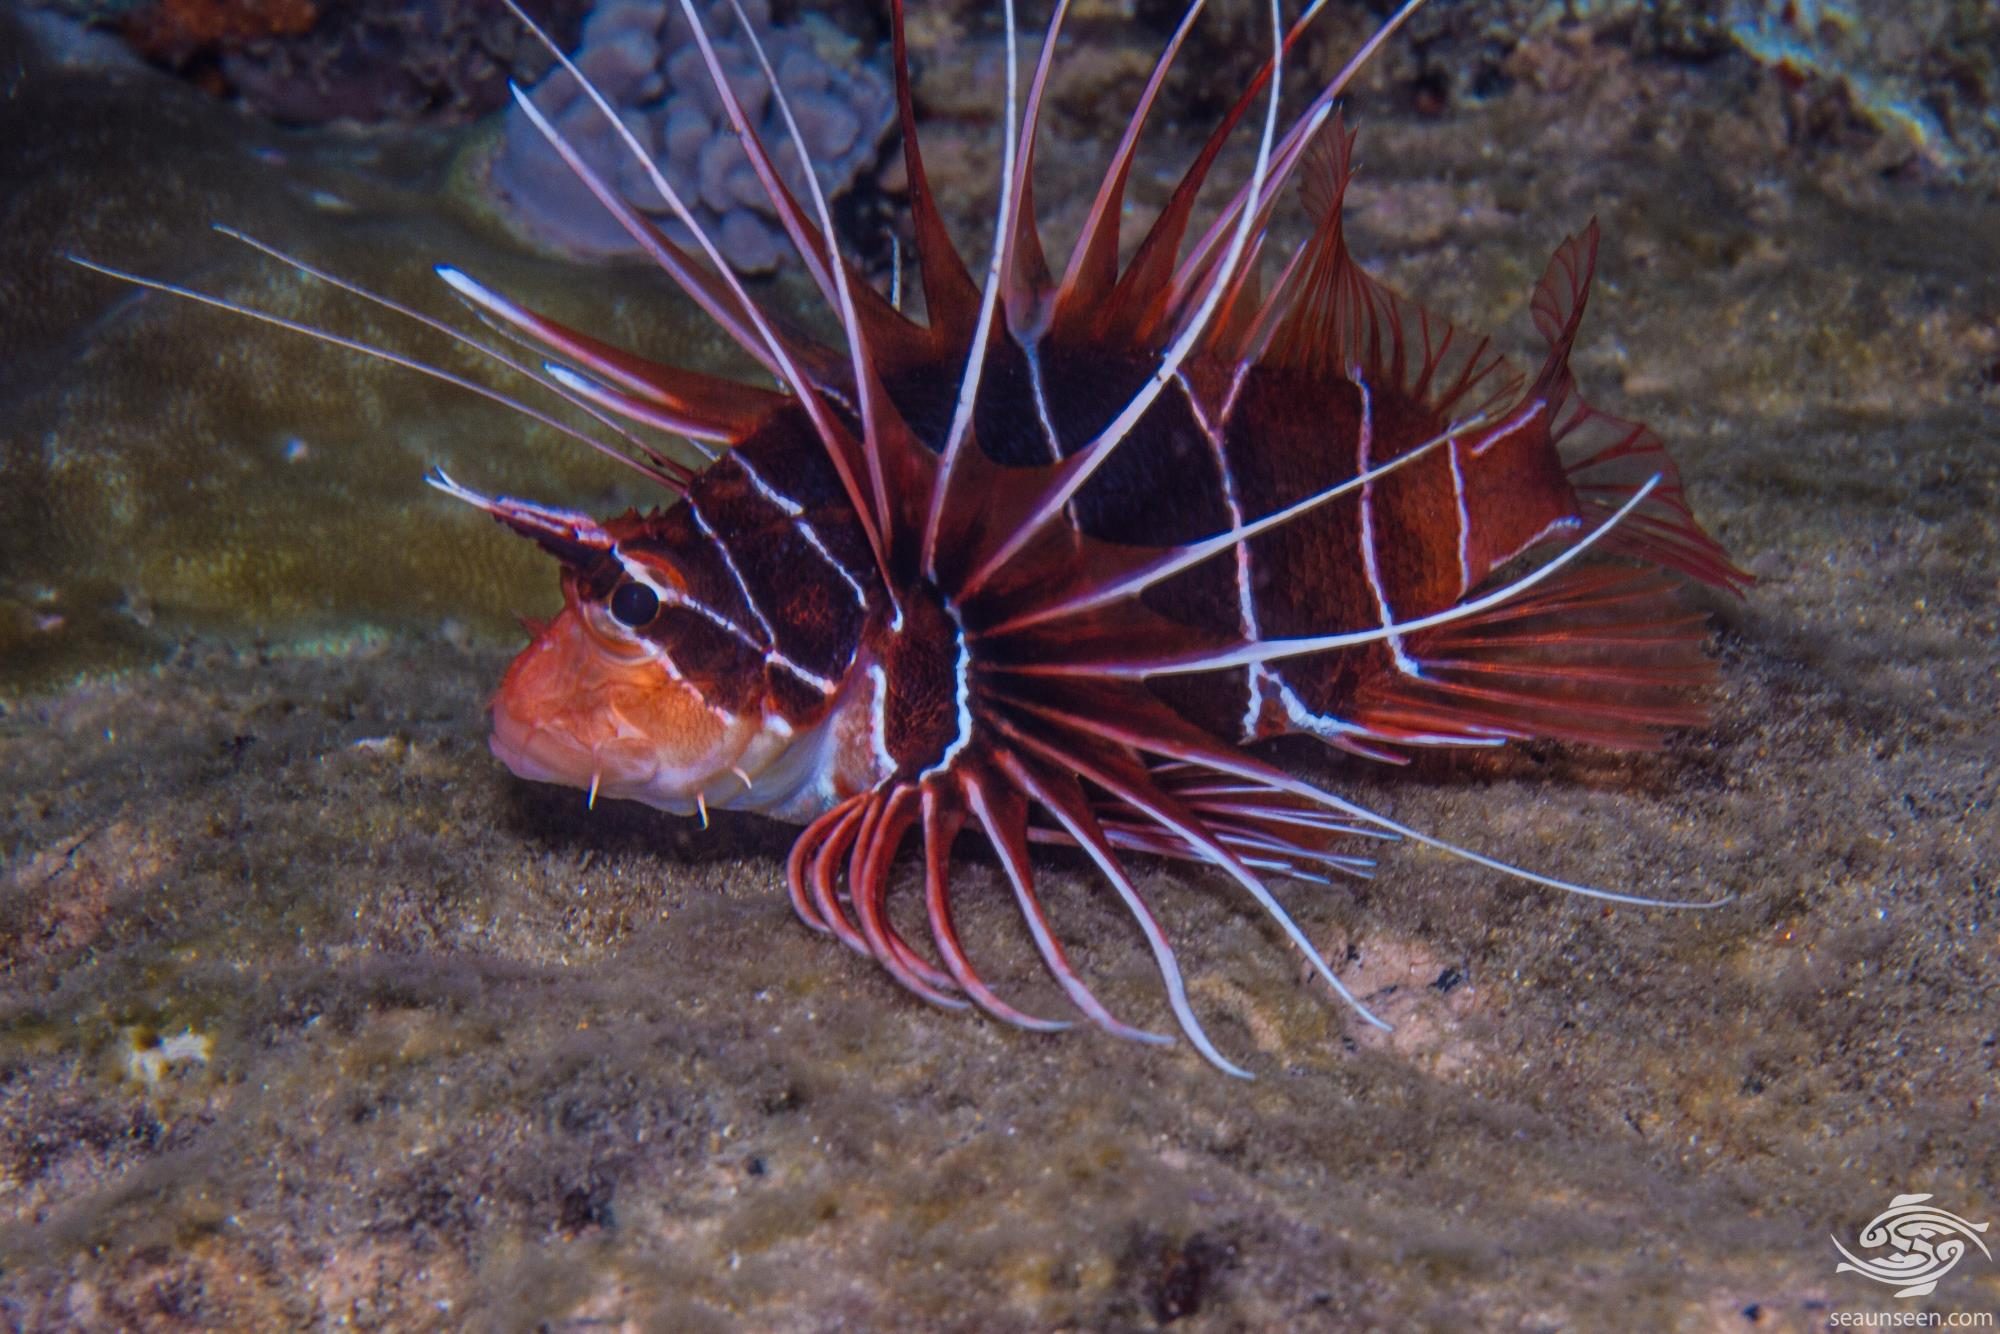 Clearfin lionfish (Pterois radiata) is also known as the Radial lionfish or Tailbar Lionfish.